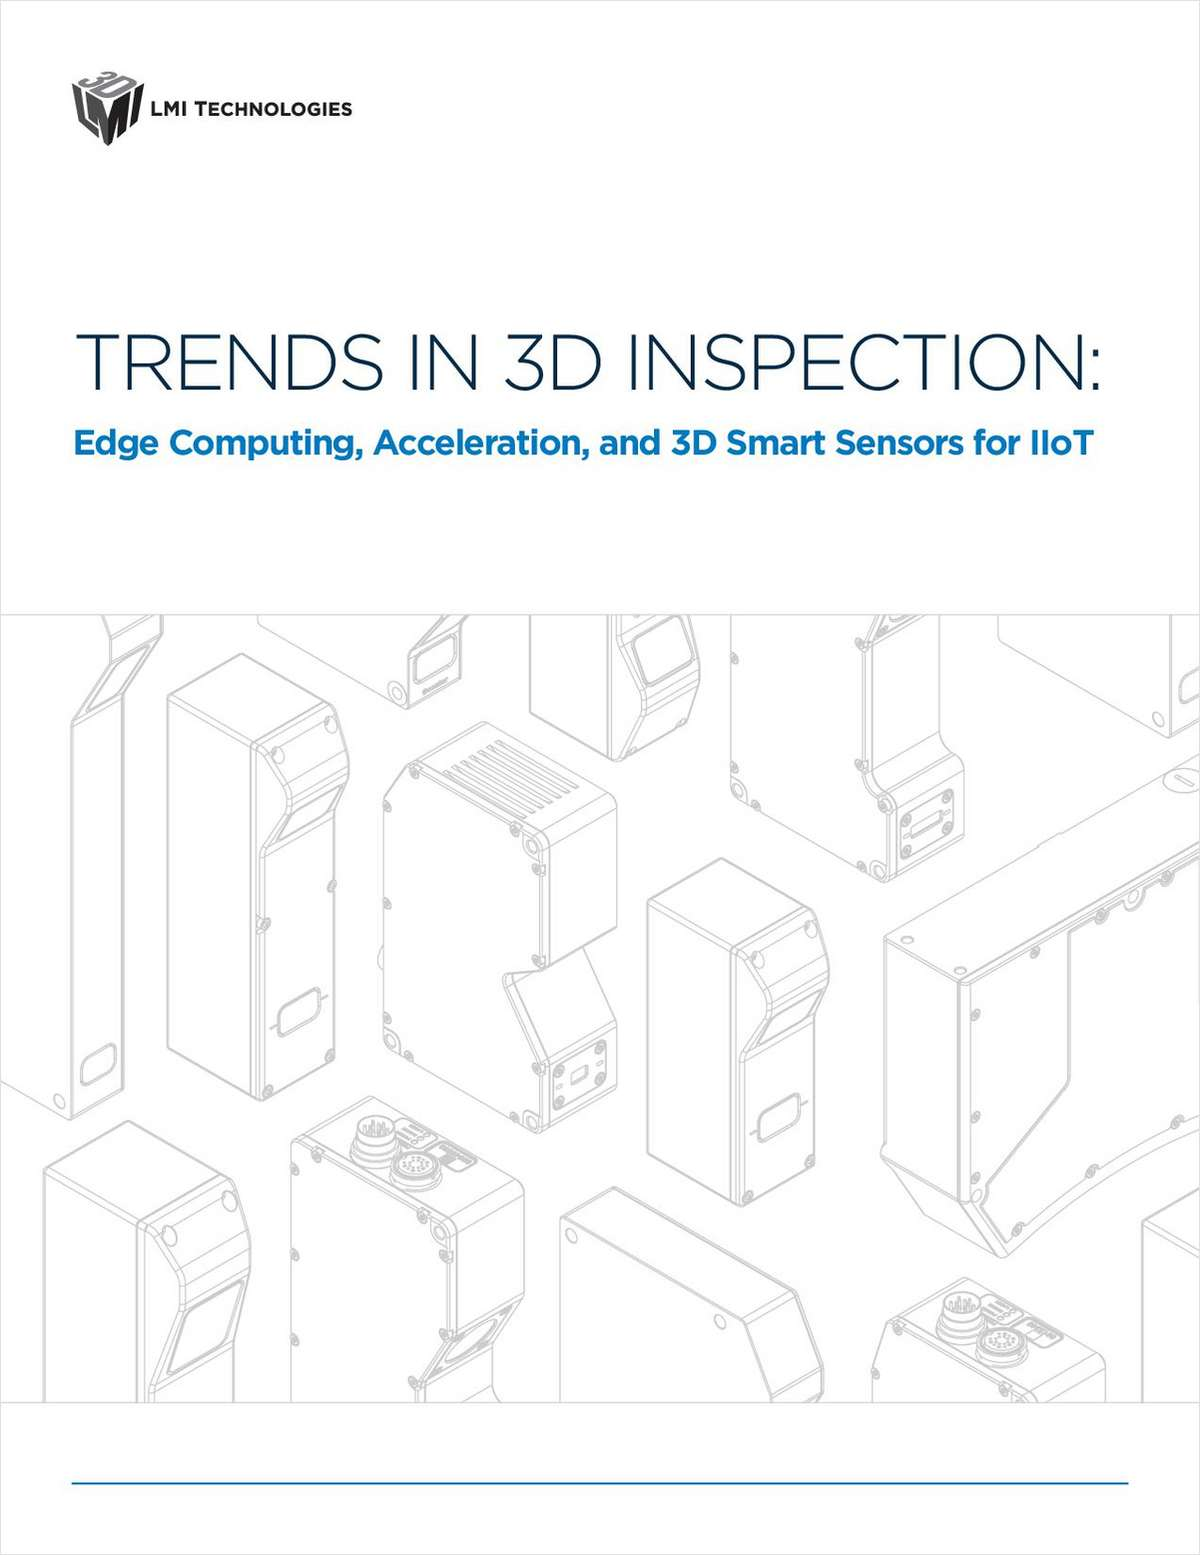 Trends in 3D Inspection: Edge Computing, Acceleration, and 3D Smart Sensors for IIoT